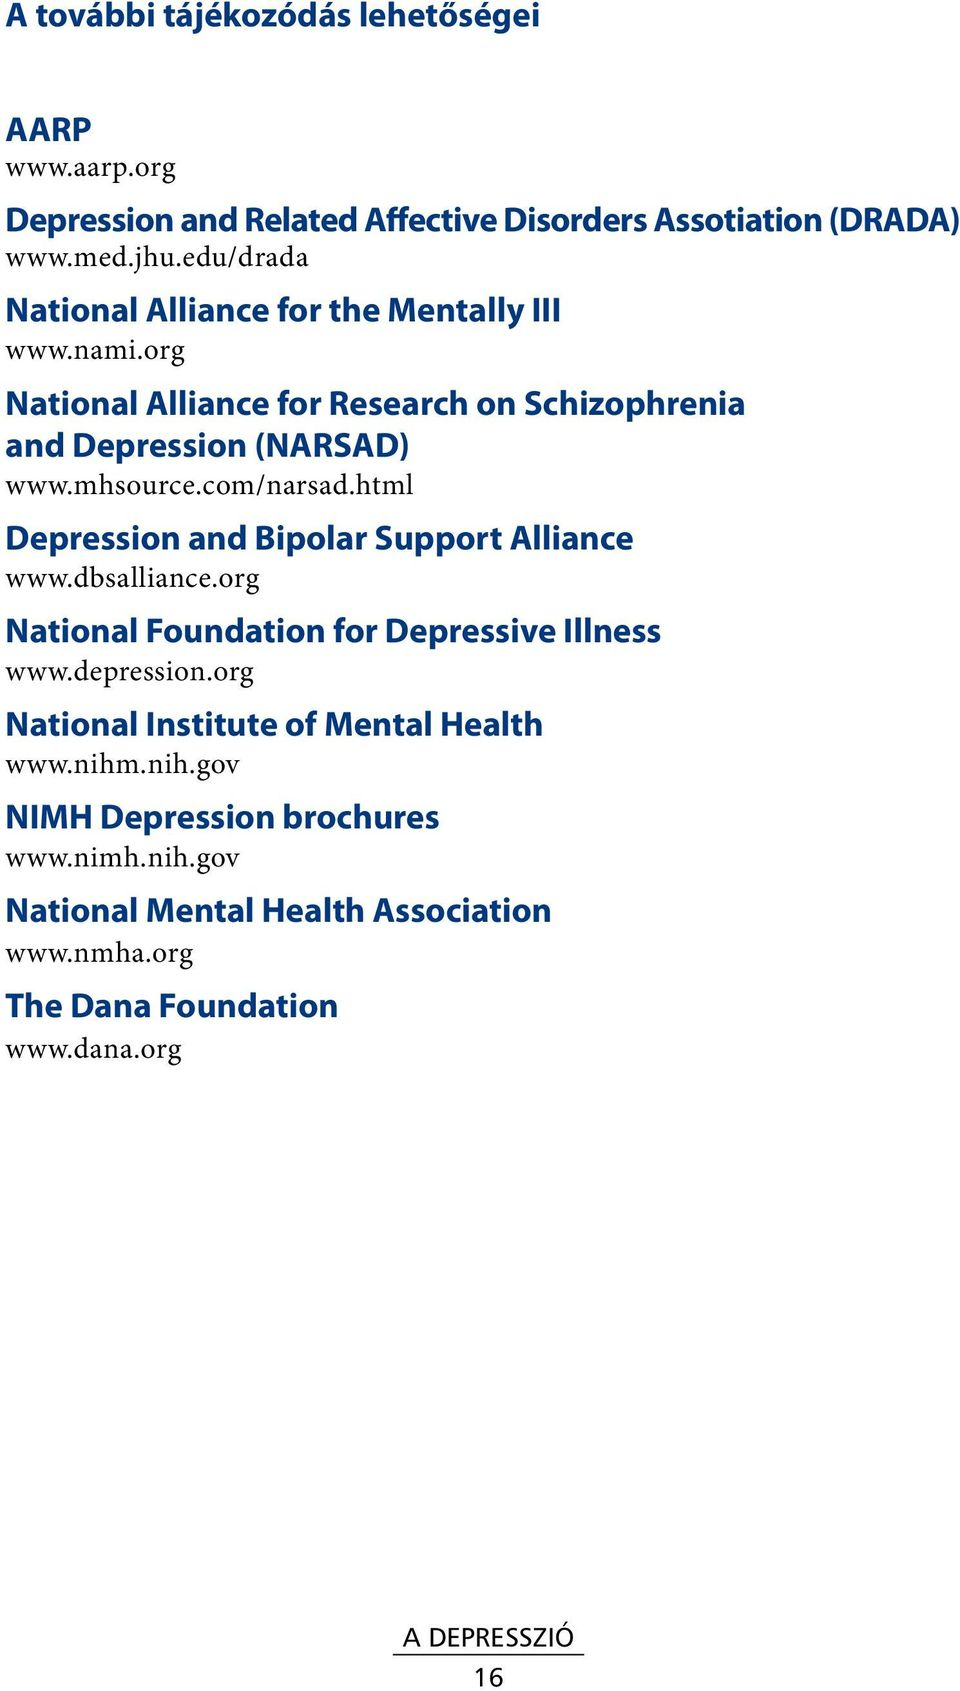 com/narsad.html Depression and Bipolar Support Alliance www.dbsalliance.org National Foundation for Depressive Illness www.depression.